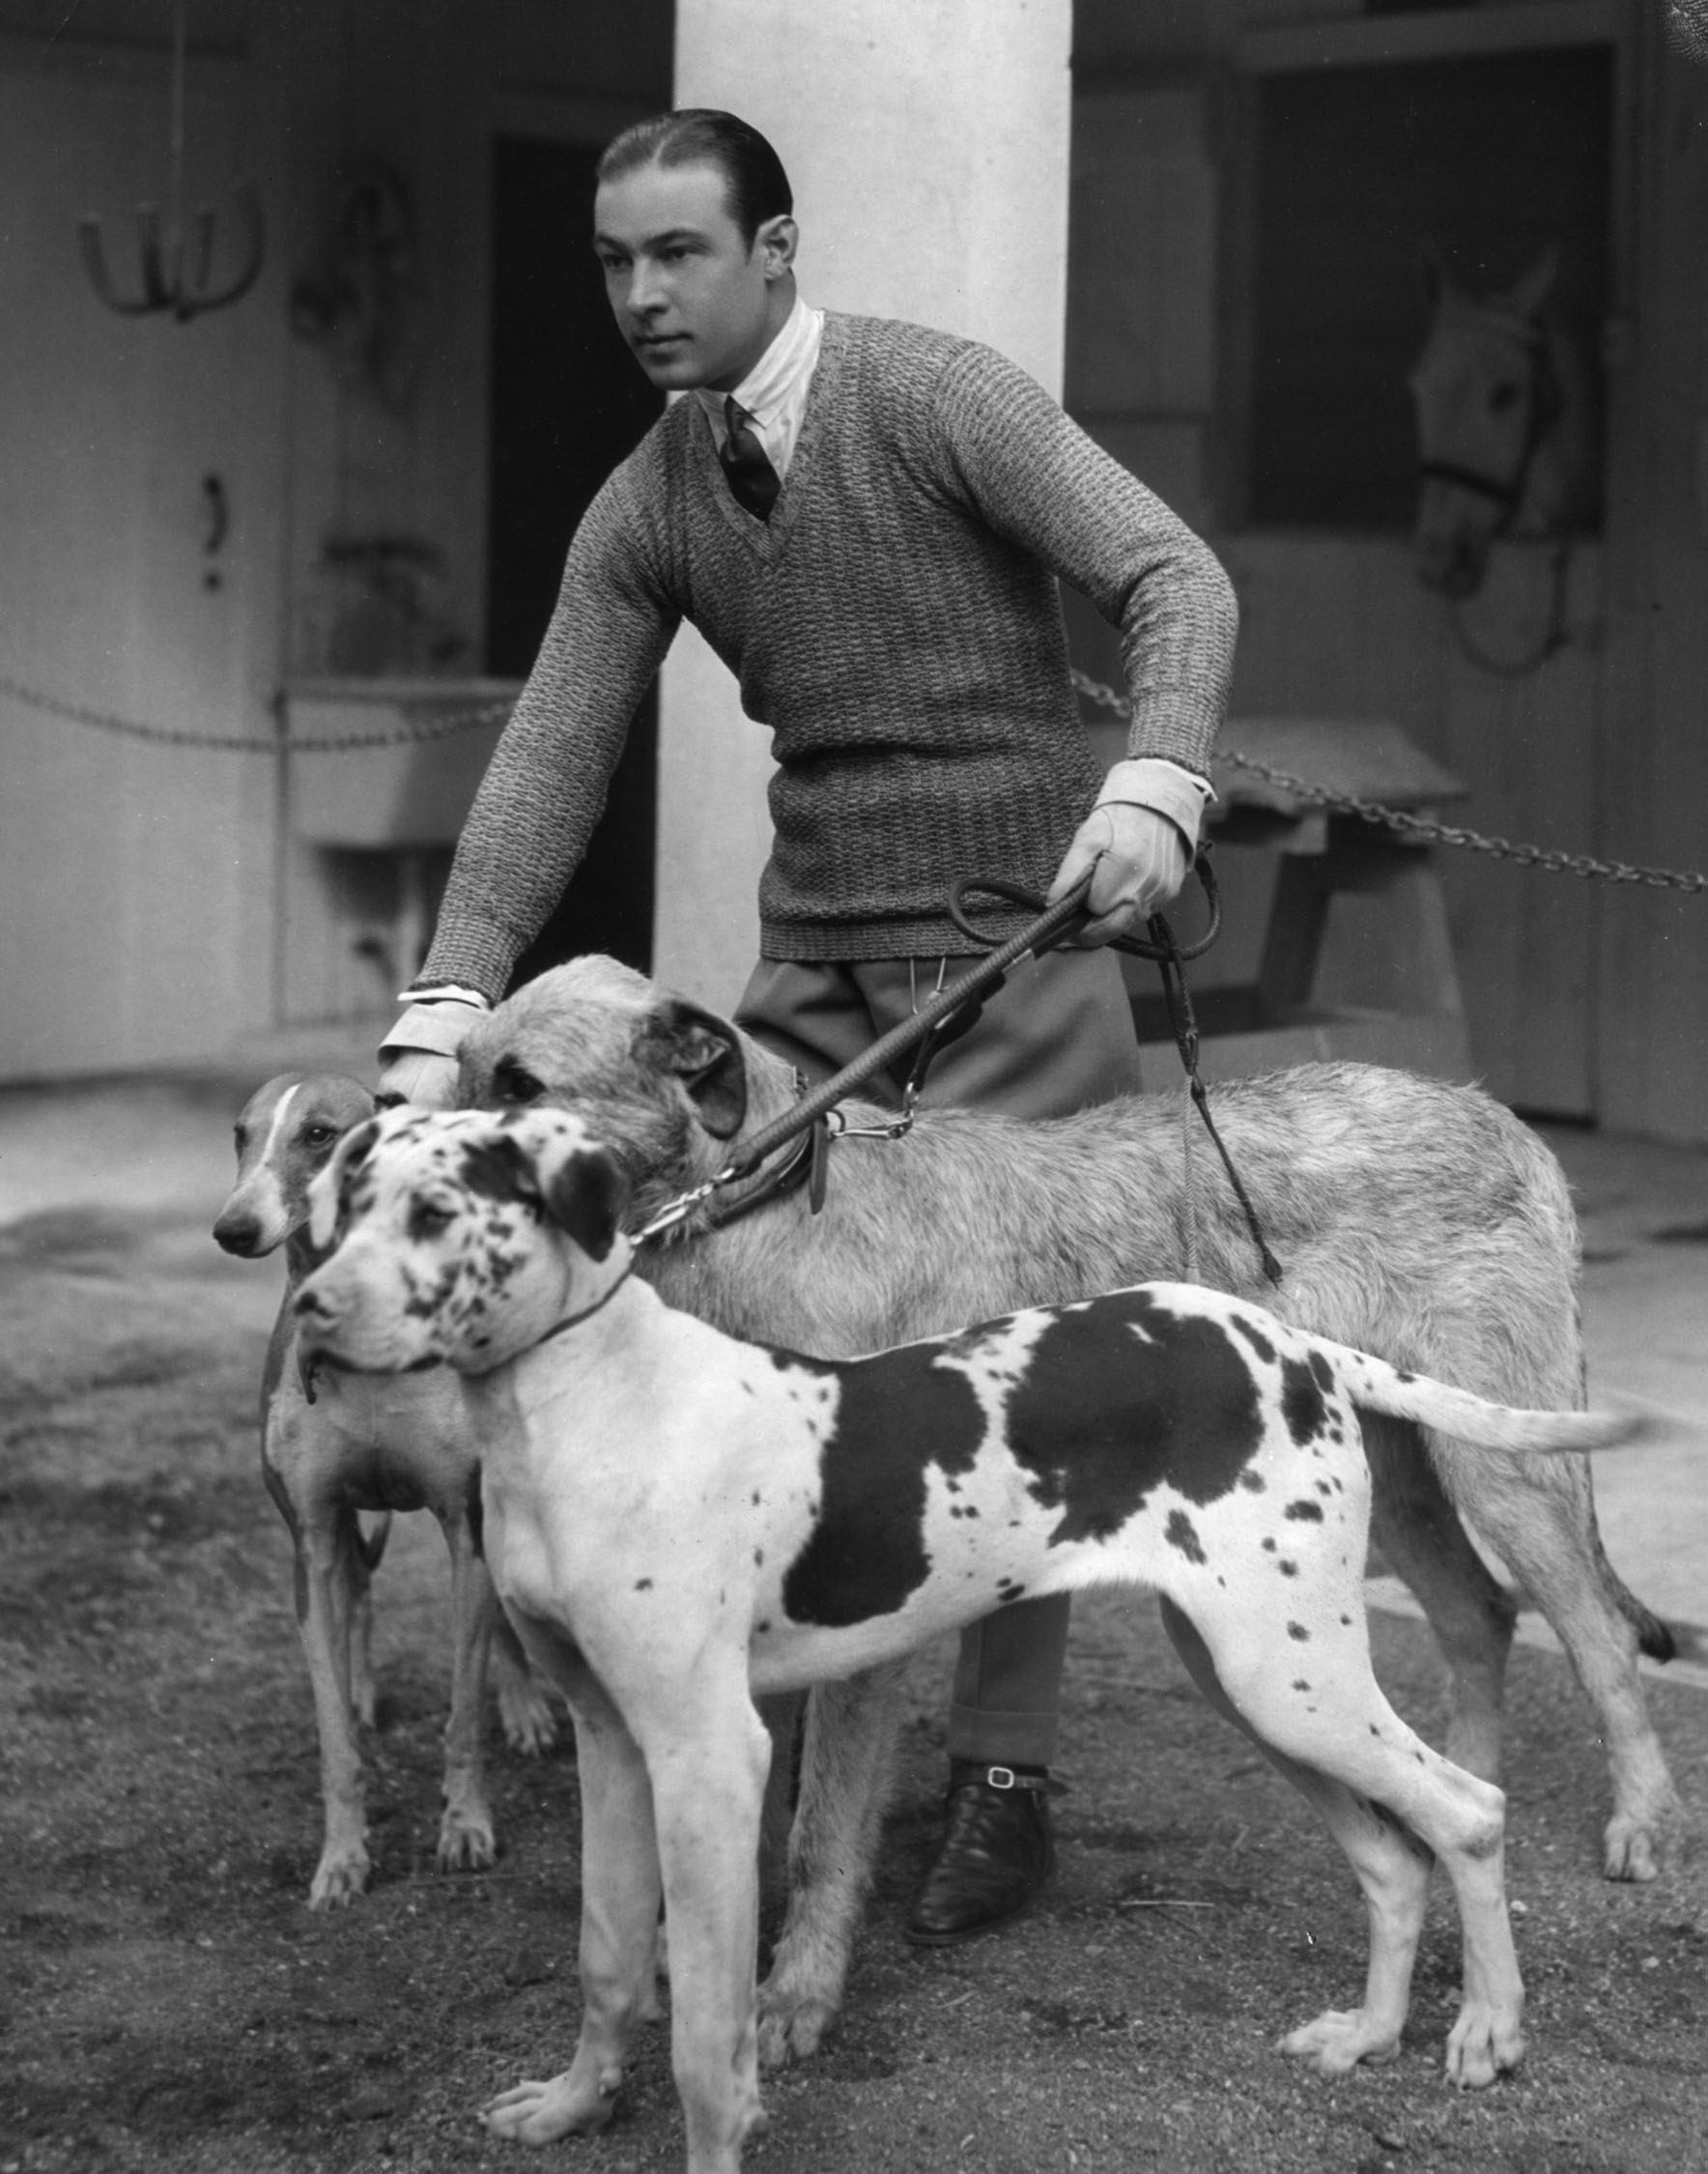 """Rudolph Valentino and his dogs. Original caption reads, """"Rudolph Valentino has his hands full when he takes three of his favorite dogs for a mornings (sic) walk in the mountains surrounding his new estate in Beverley Hills, California. Left to right the dogs are: Mirtza, an Arabian greyhound, Centaur Pendragon, his Irish wolf-hound, and Shaitan, the great Dane pup. Mirtza and Centaur Pendragon make their screen debut with their master in 'Son of the Sheik' the new Valentino opus for United Artists"""""""